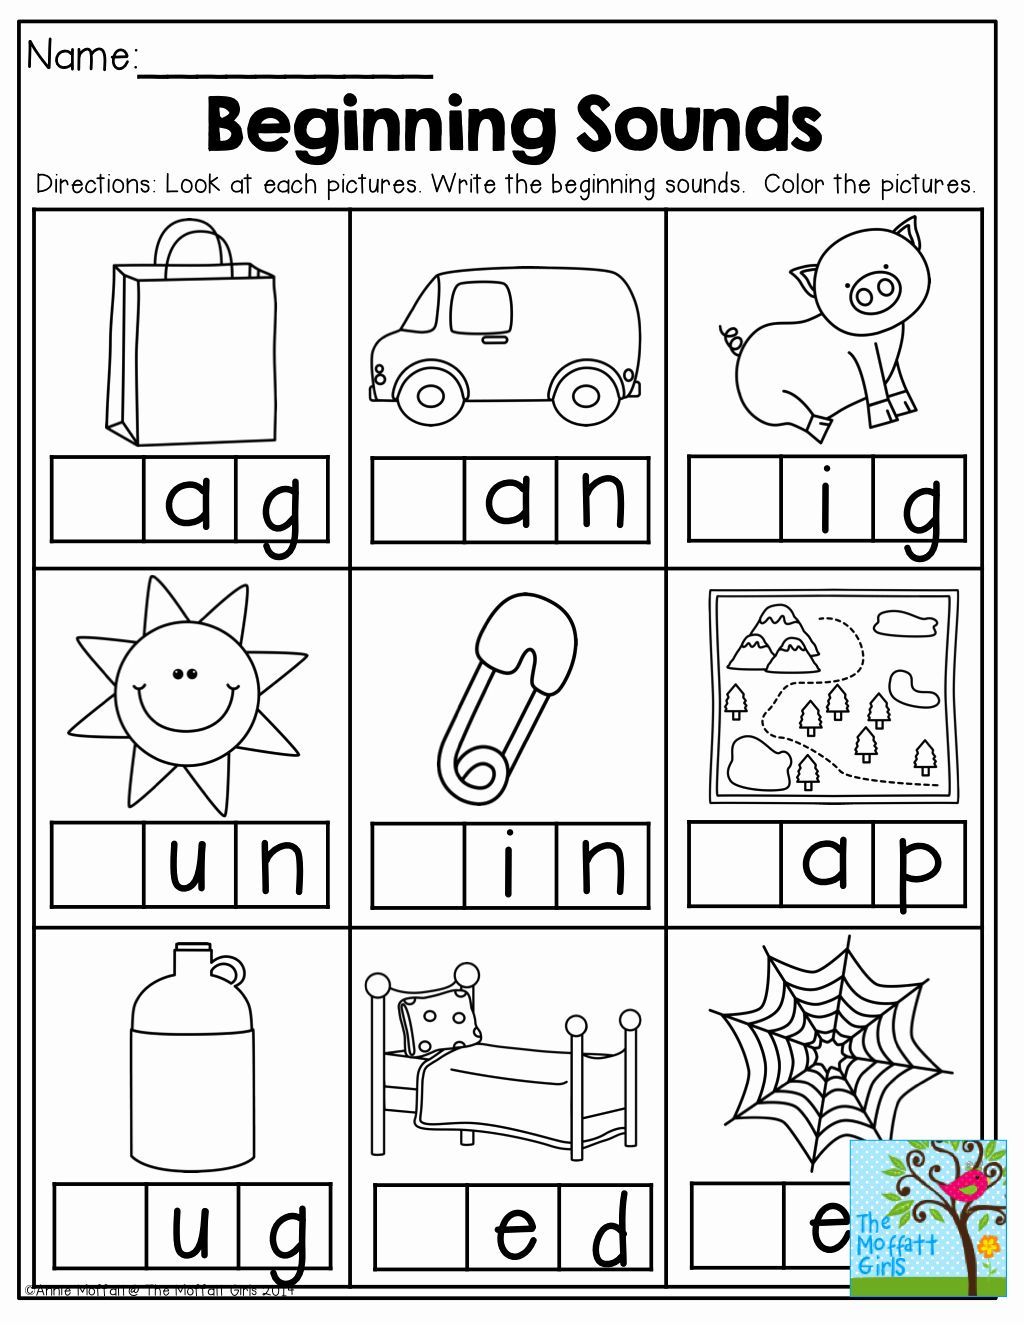 Beginning Sounds Preschool Worksheets In